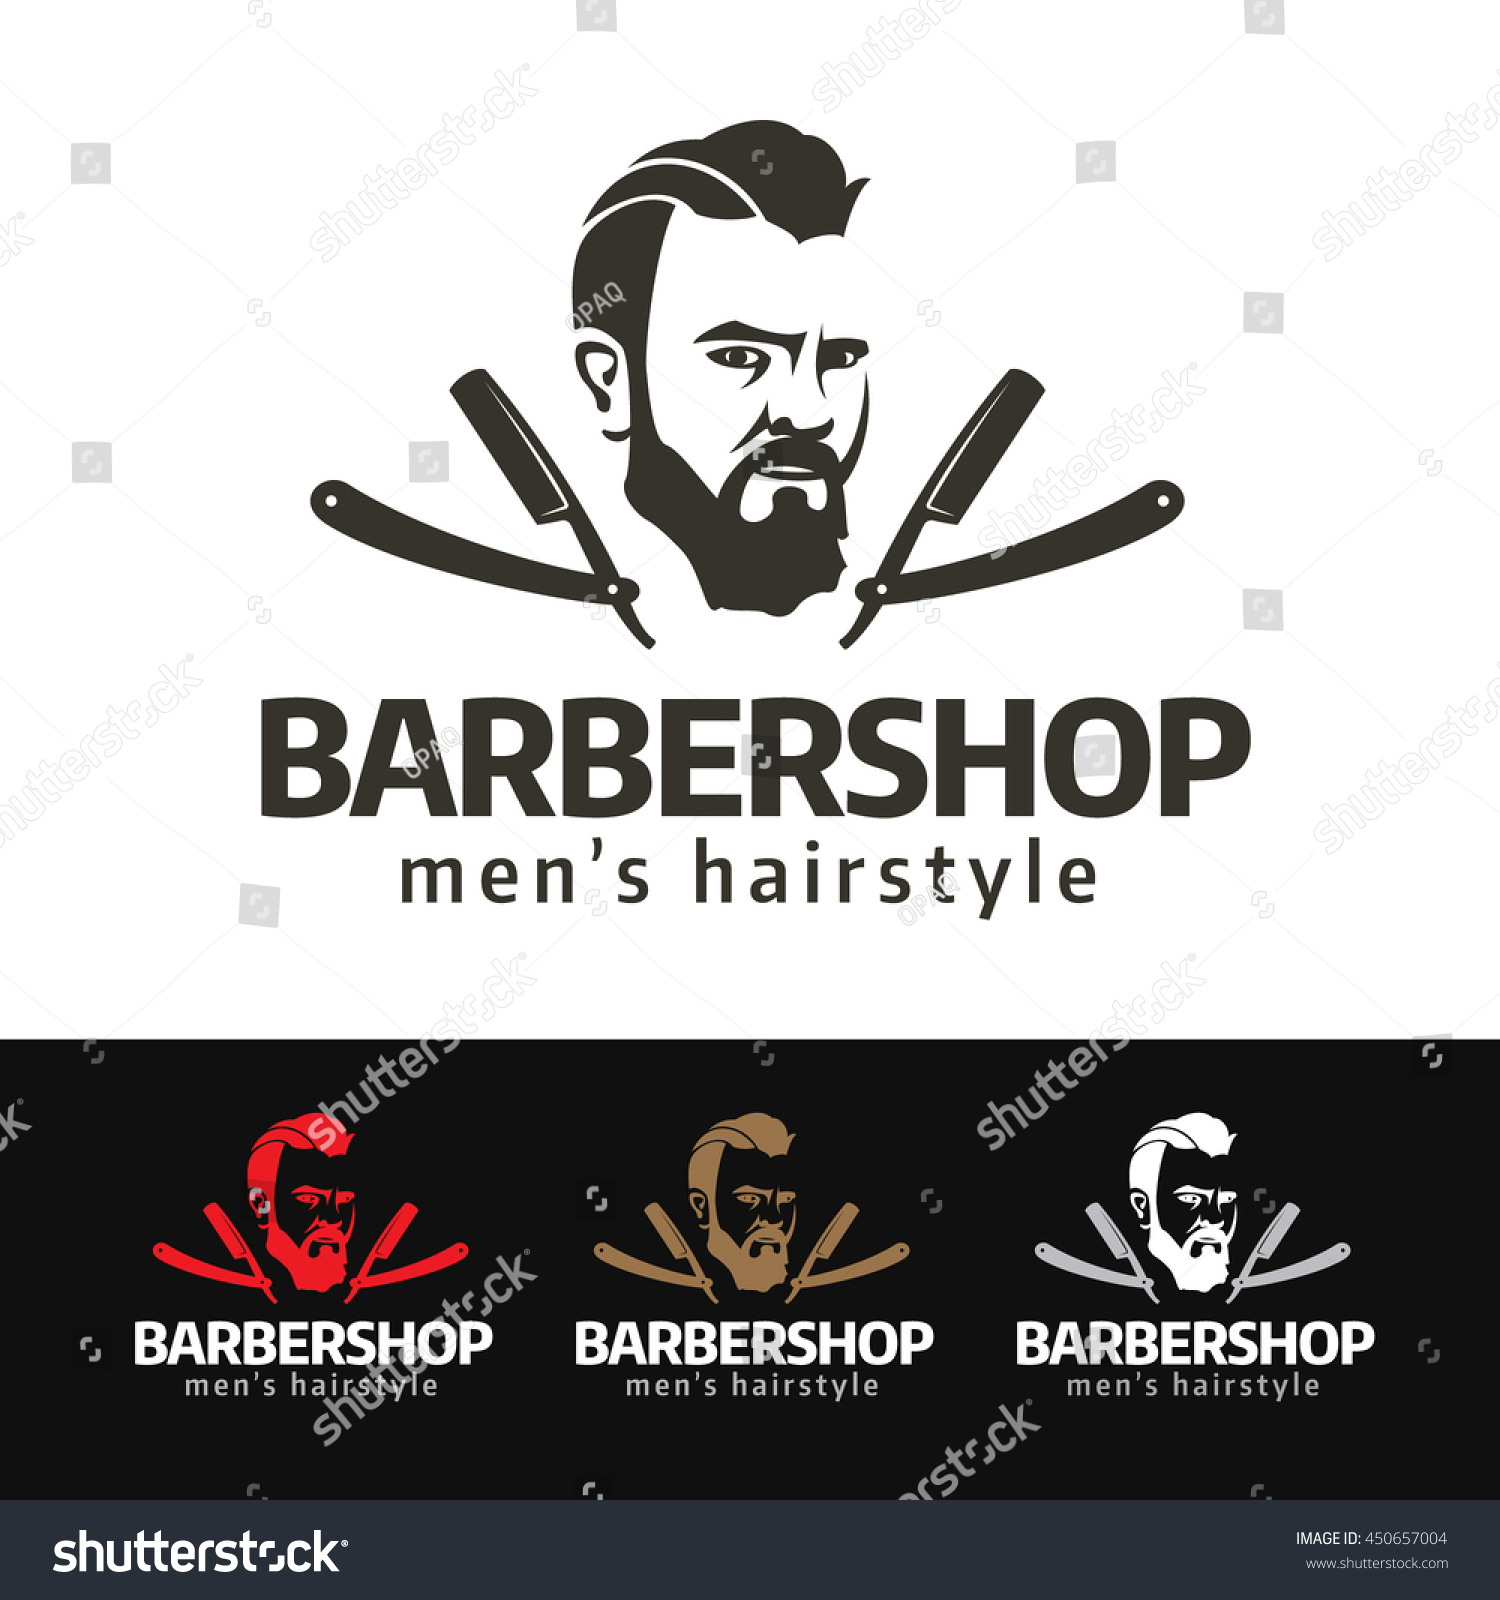 Logo of a fashion beard man with vintage razor blades this logo is suitable for